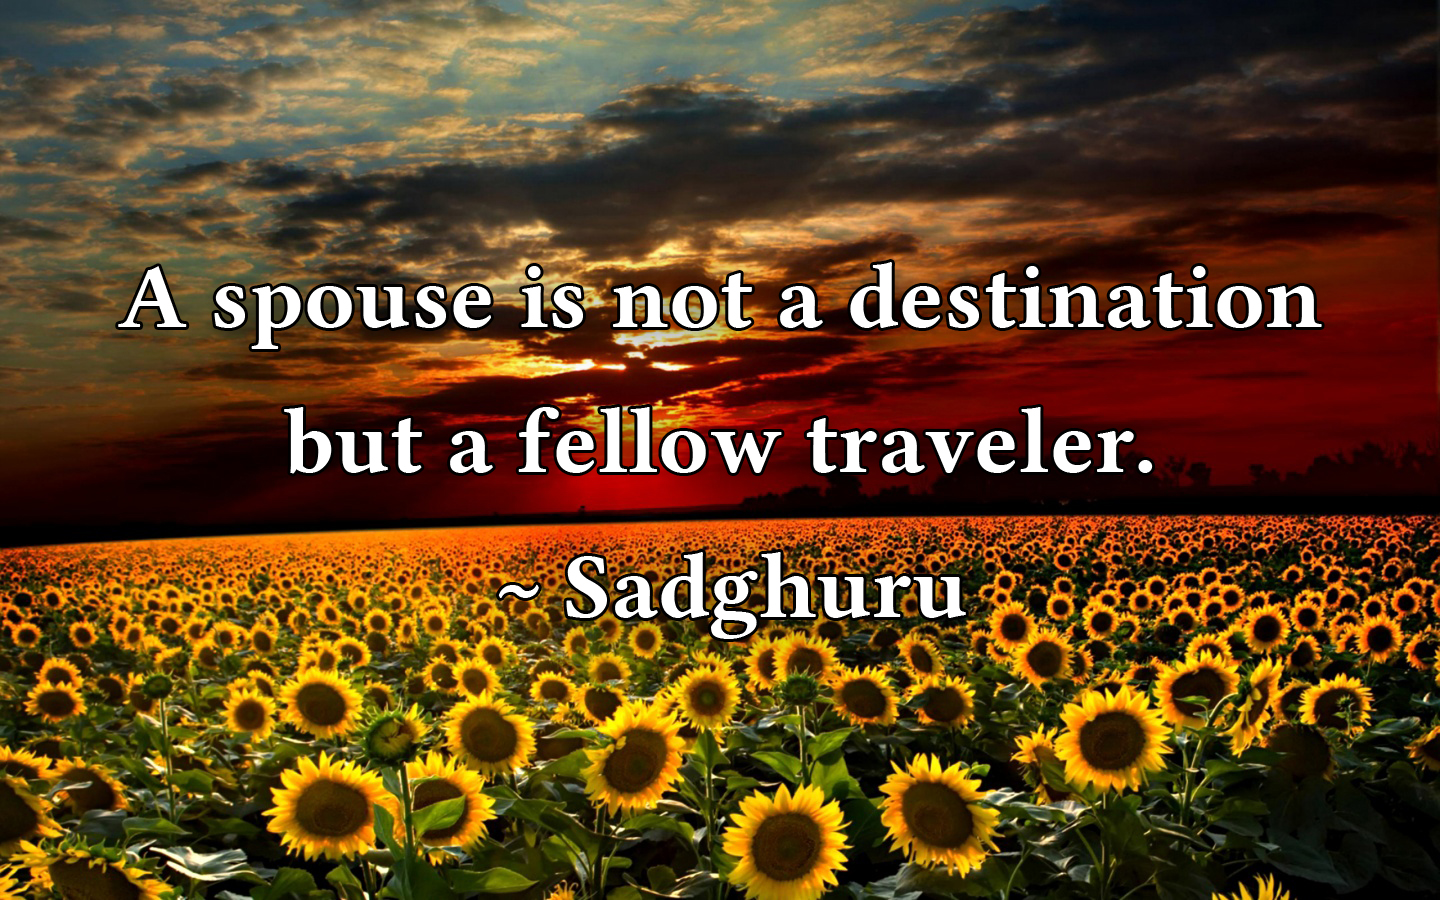 A Quote by Sadghuru.jpg